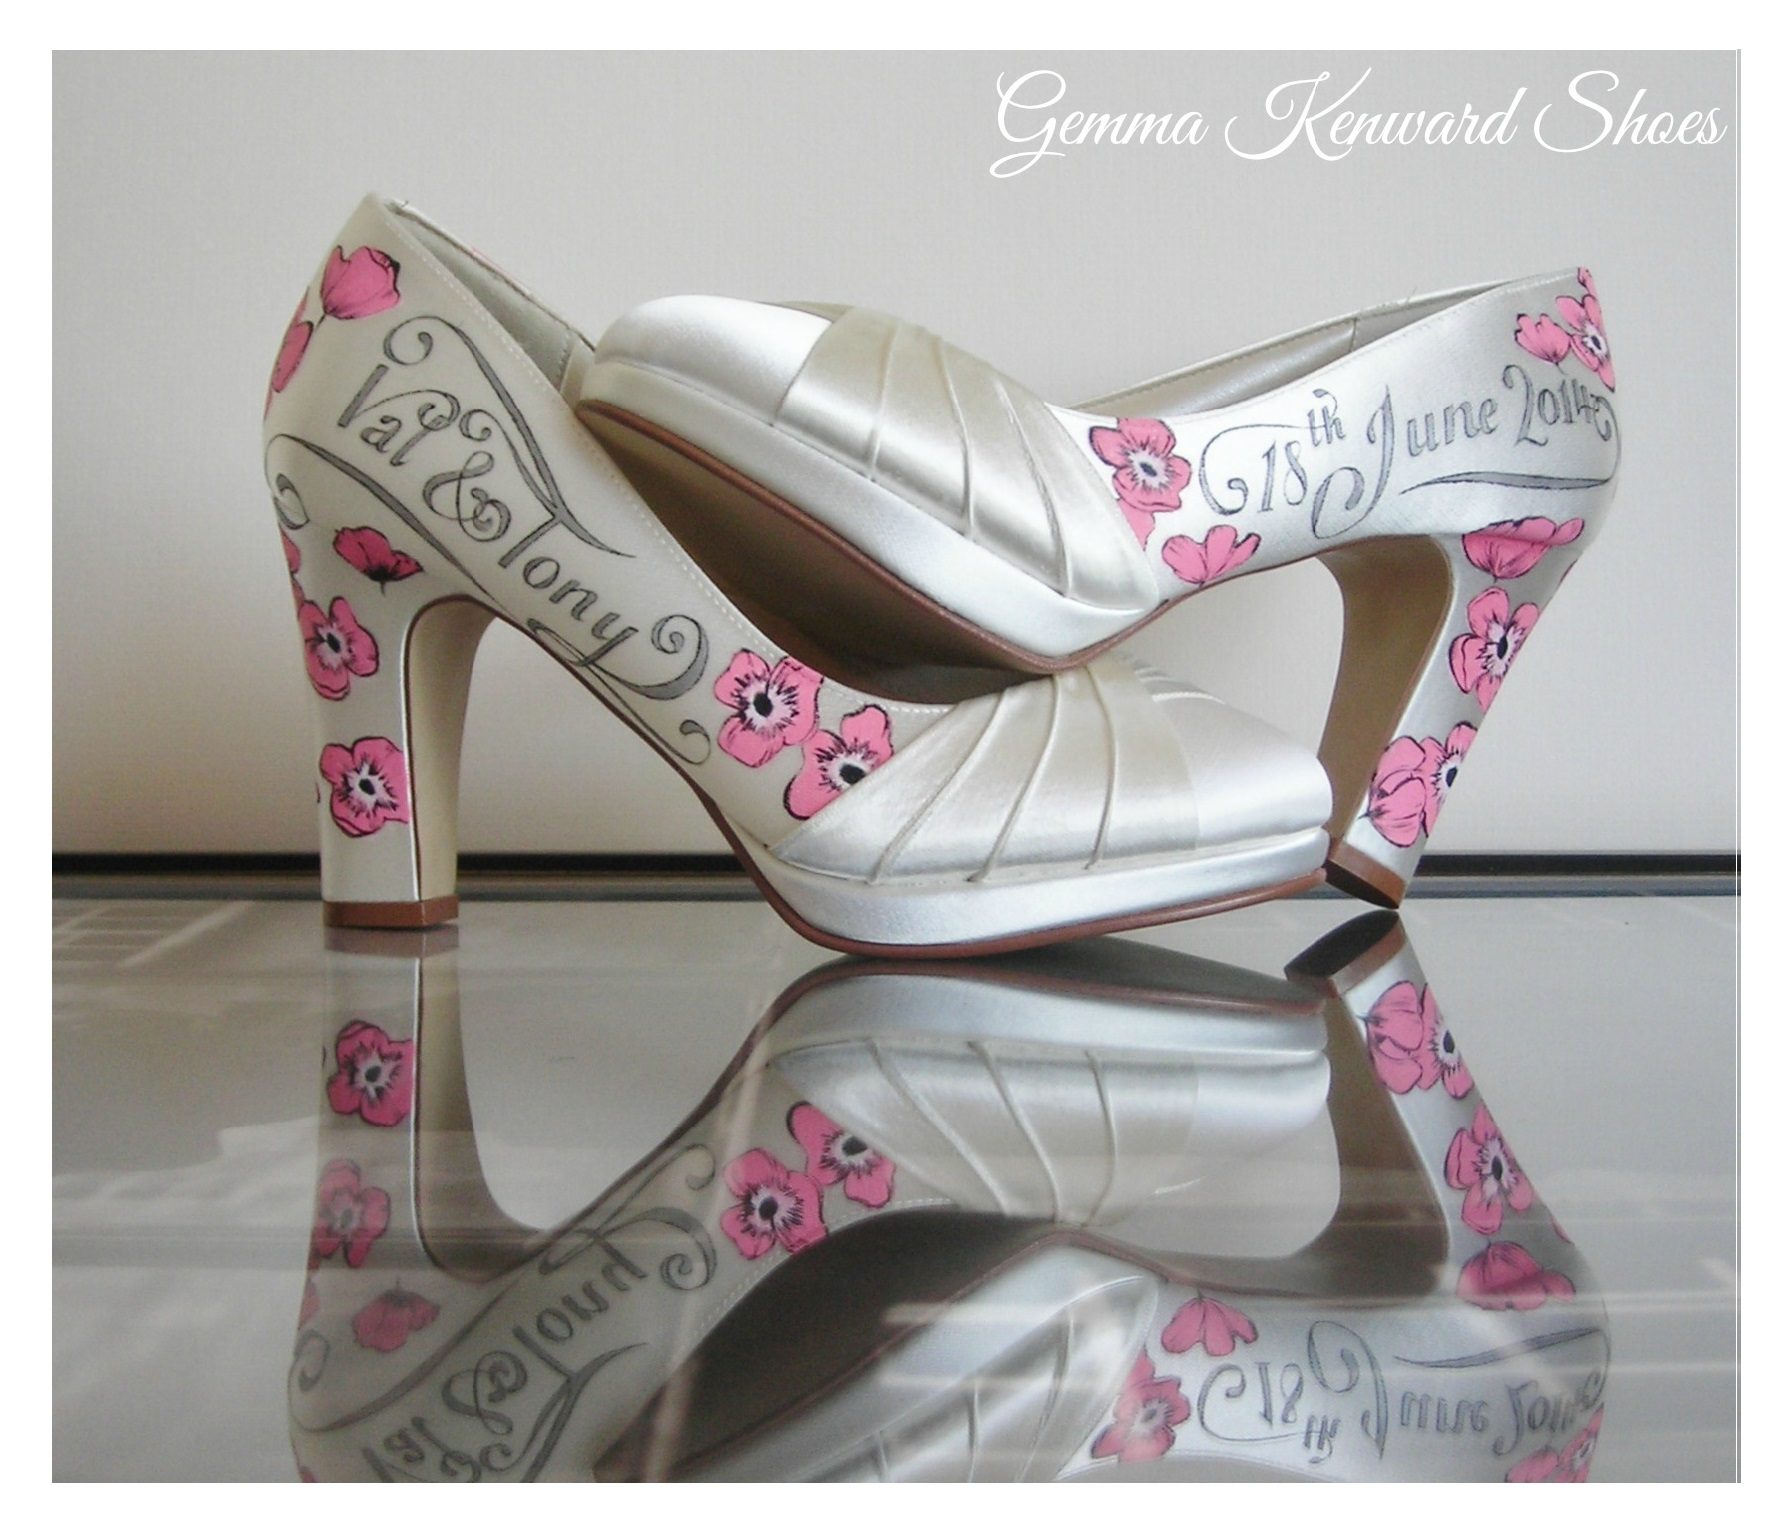 personalised pink poppies painted on satin shoes.jpg